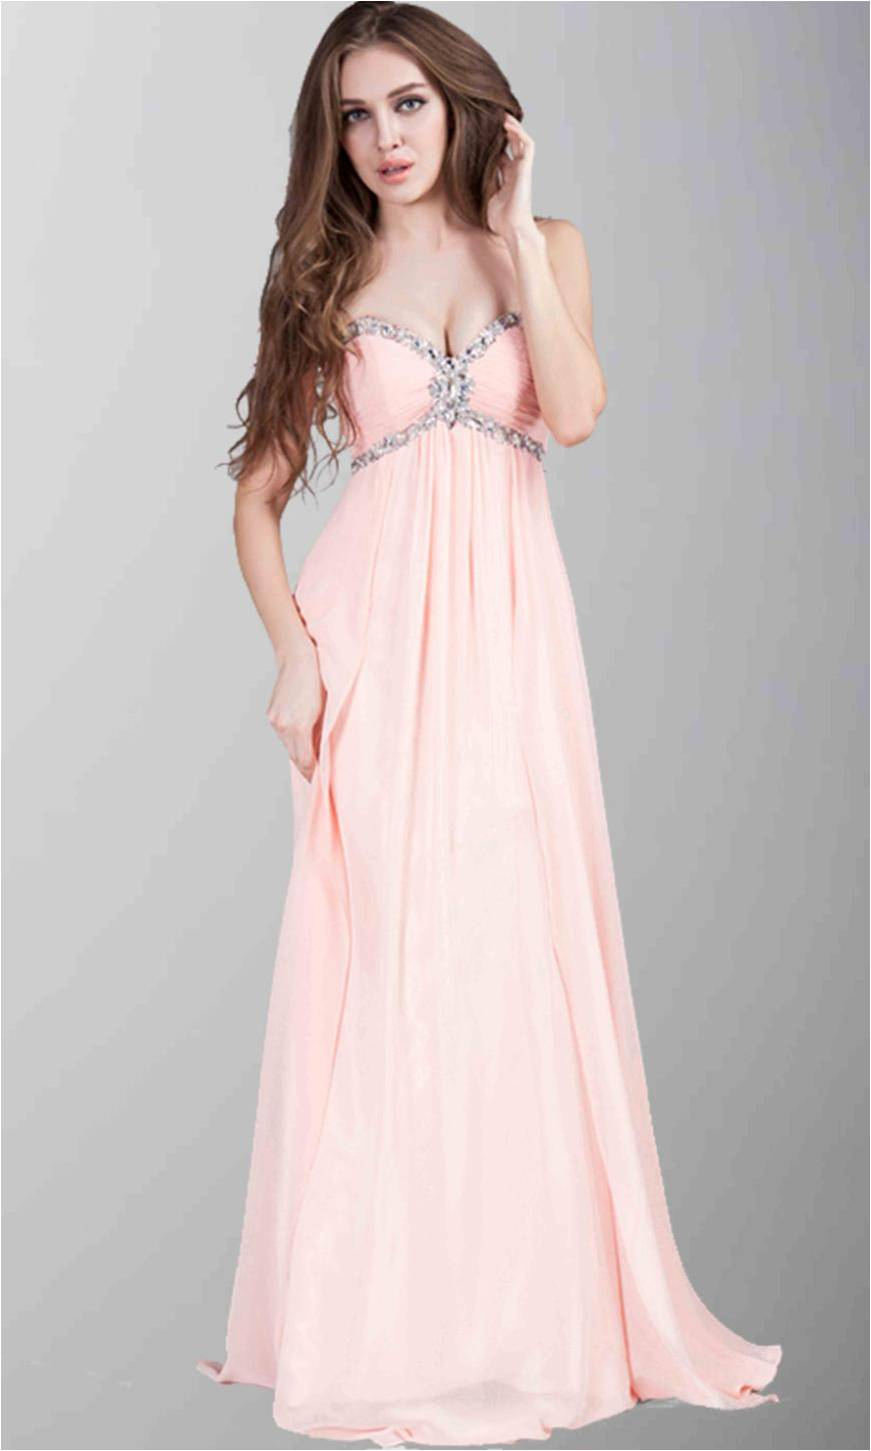 Strapless Cross Beaded Long Chiffon Prom Dress KSP115 [KSP115] - £98.00 : Cheap Prom Dresses Uk, Bridesmaid Dresses, 2014 Prom & Evening Dresses, Look for cheap elegant prom dresses 2014, cocktail gowns, or dresses for special occasions? kissprom.co.uk offers various bridesmaid dresses, evening dress, free shipping to UK etc.